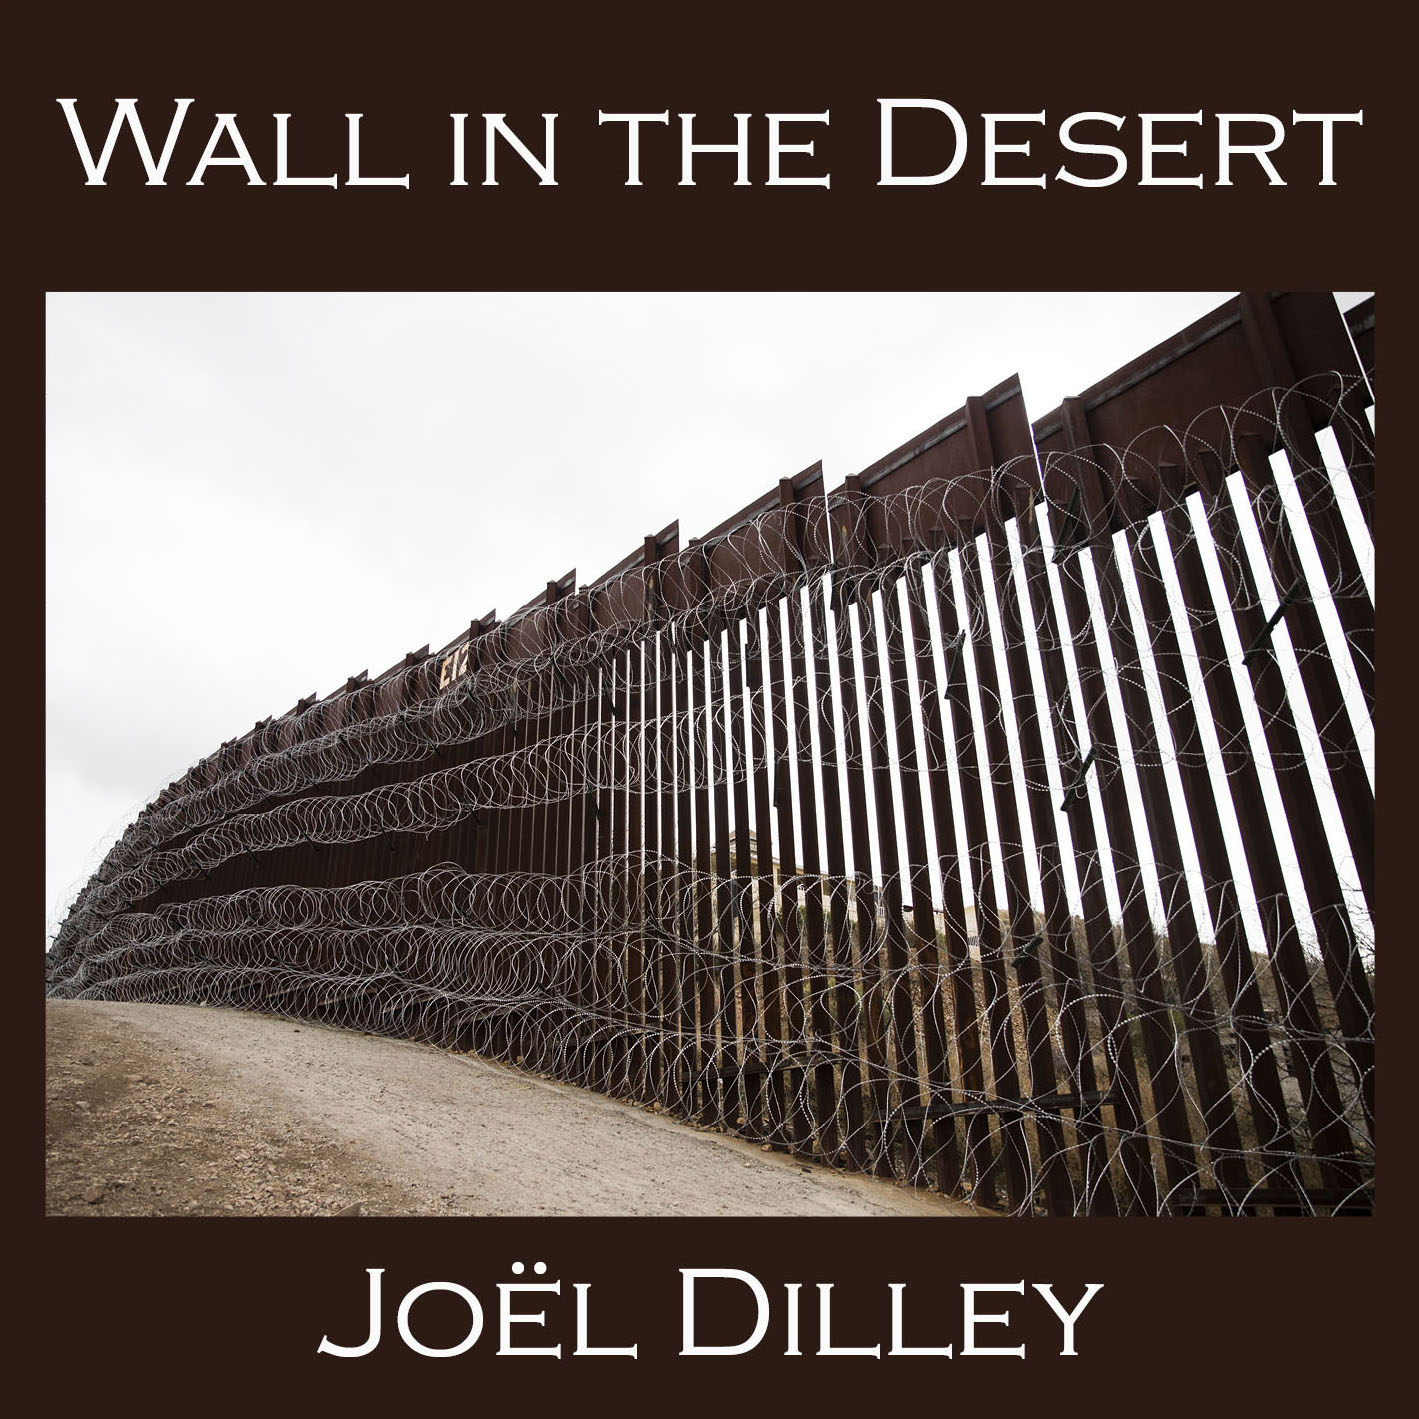 Wall in the Desert